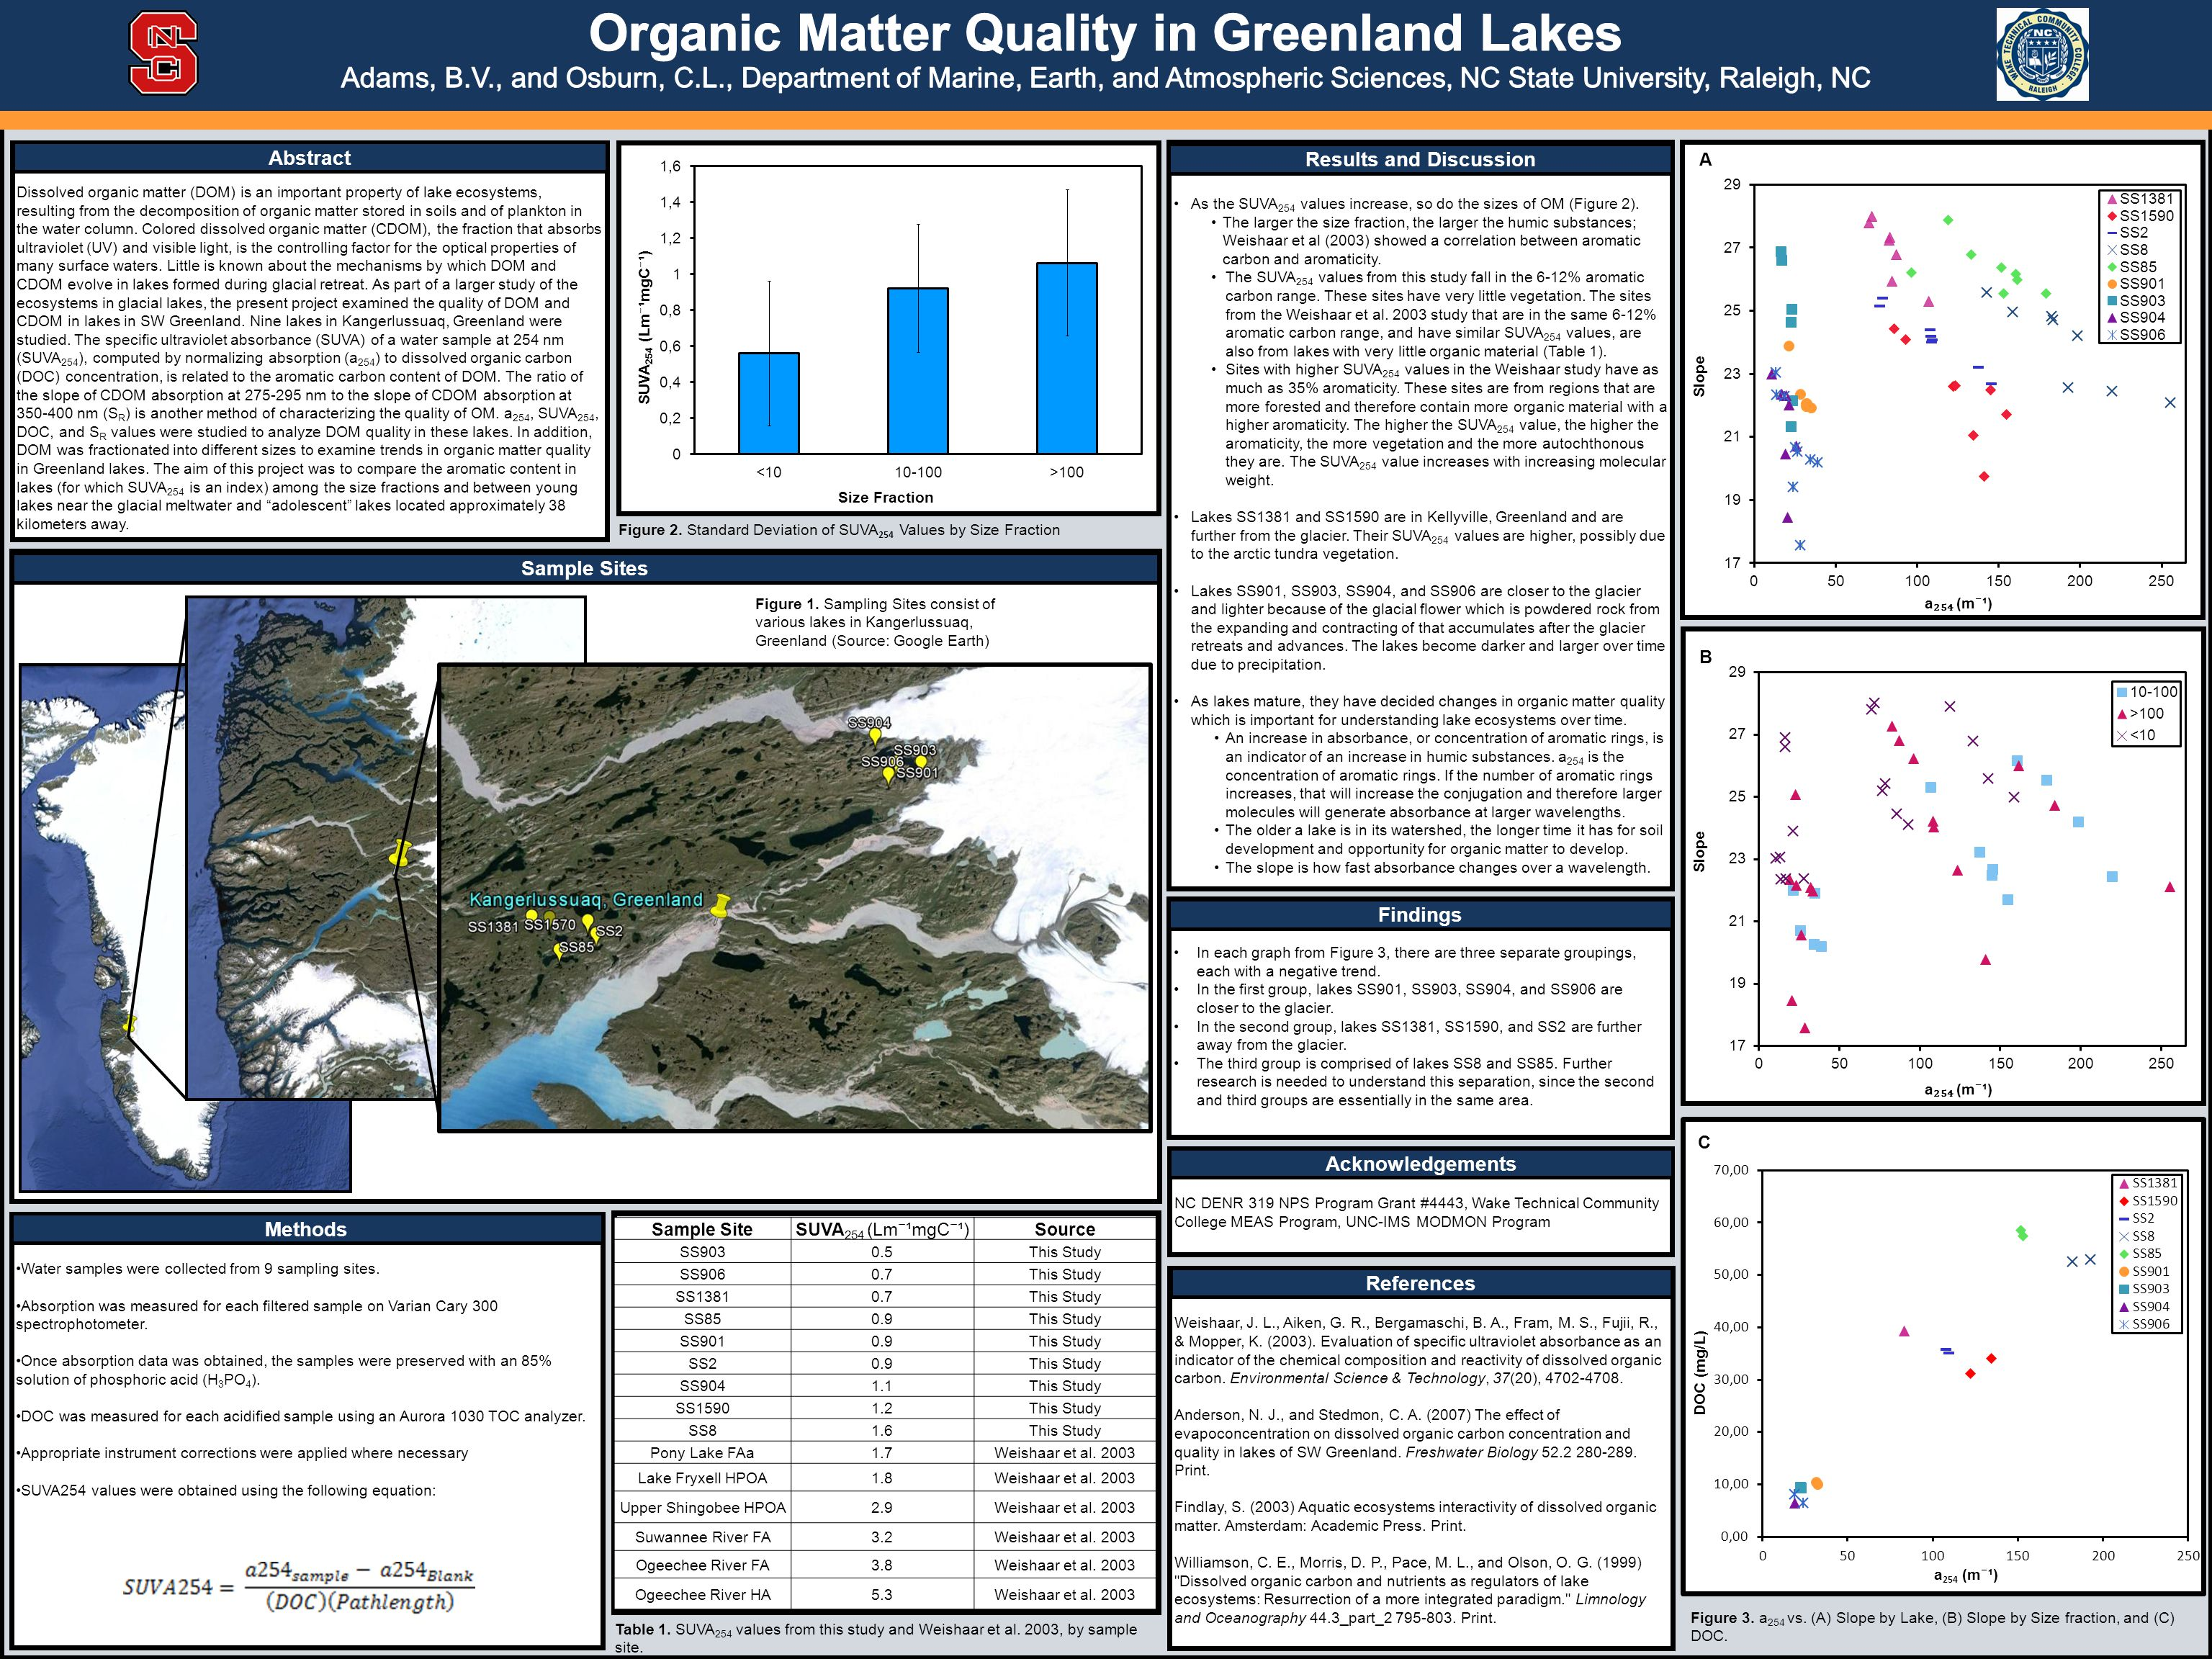 Dissolved organic matter (DOM) is an important property of lake ecosystems, resulting from the decomposition of organic matter stored in soils and of plankton in the water column.